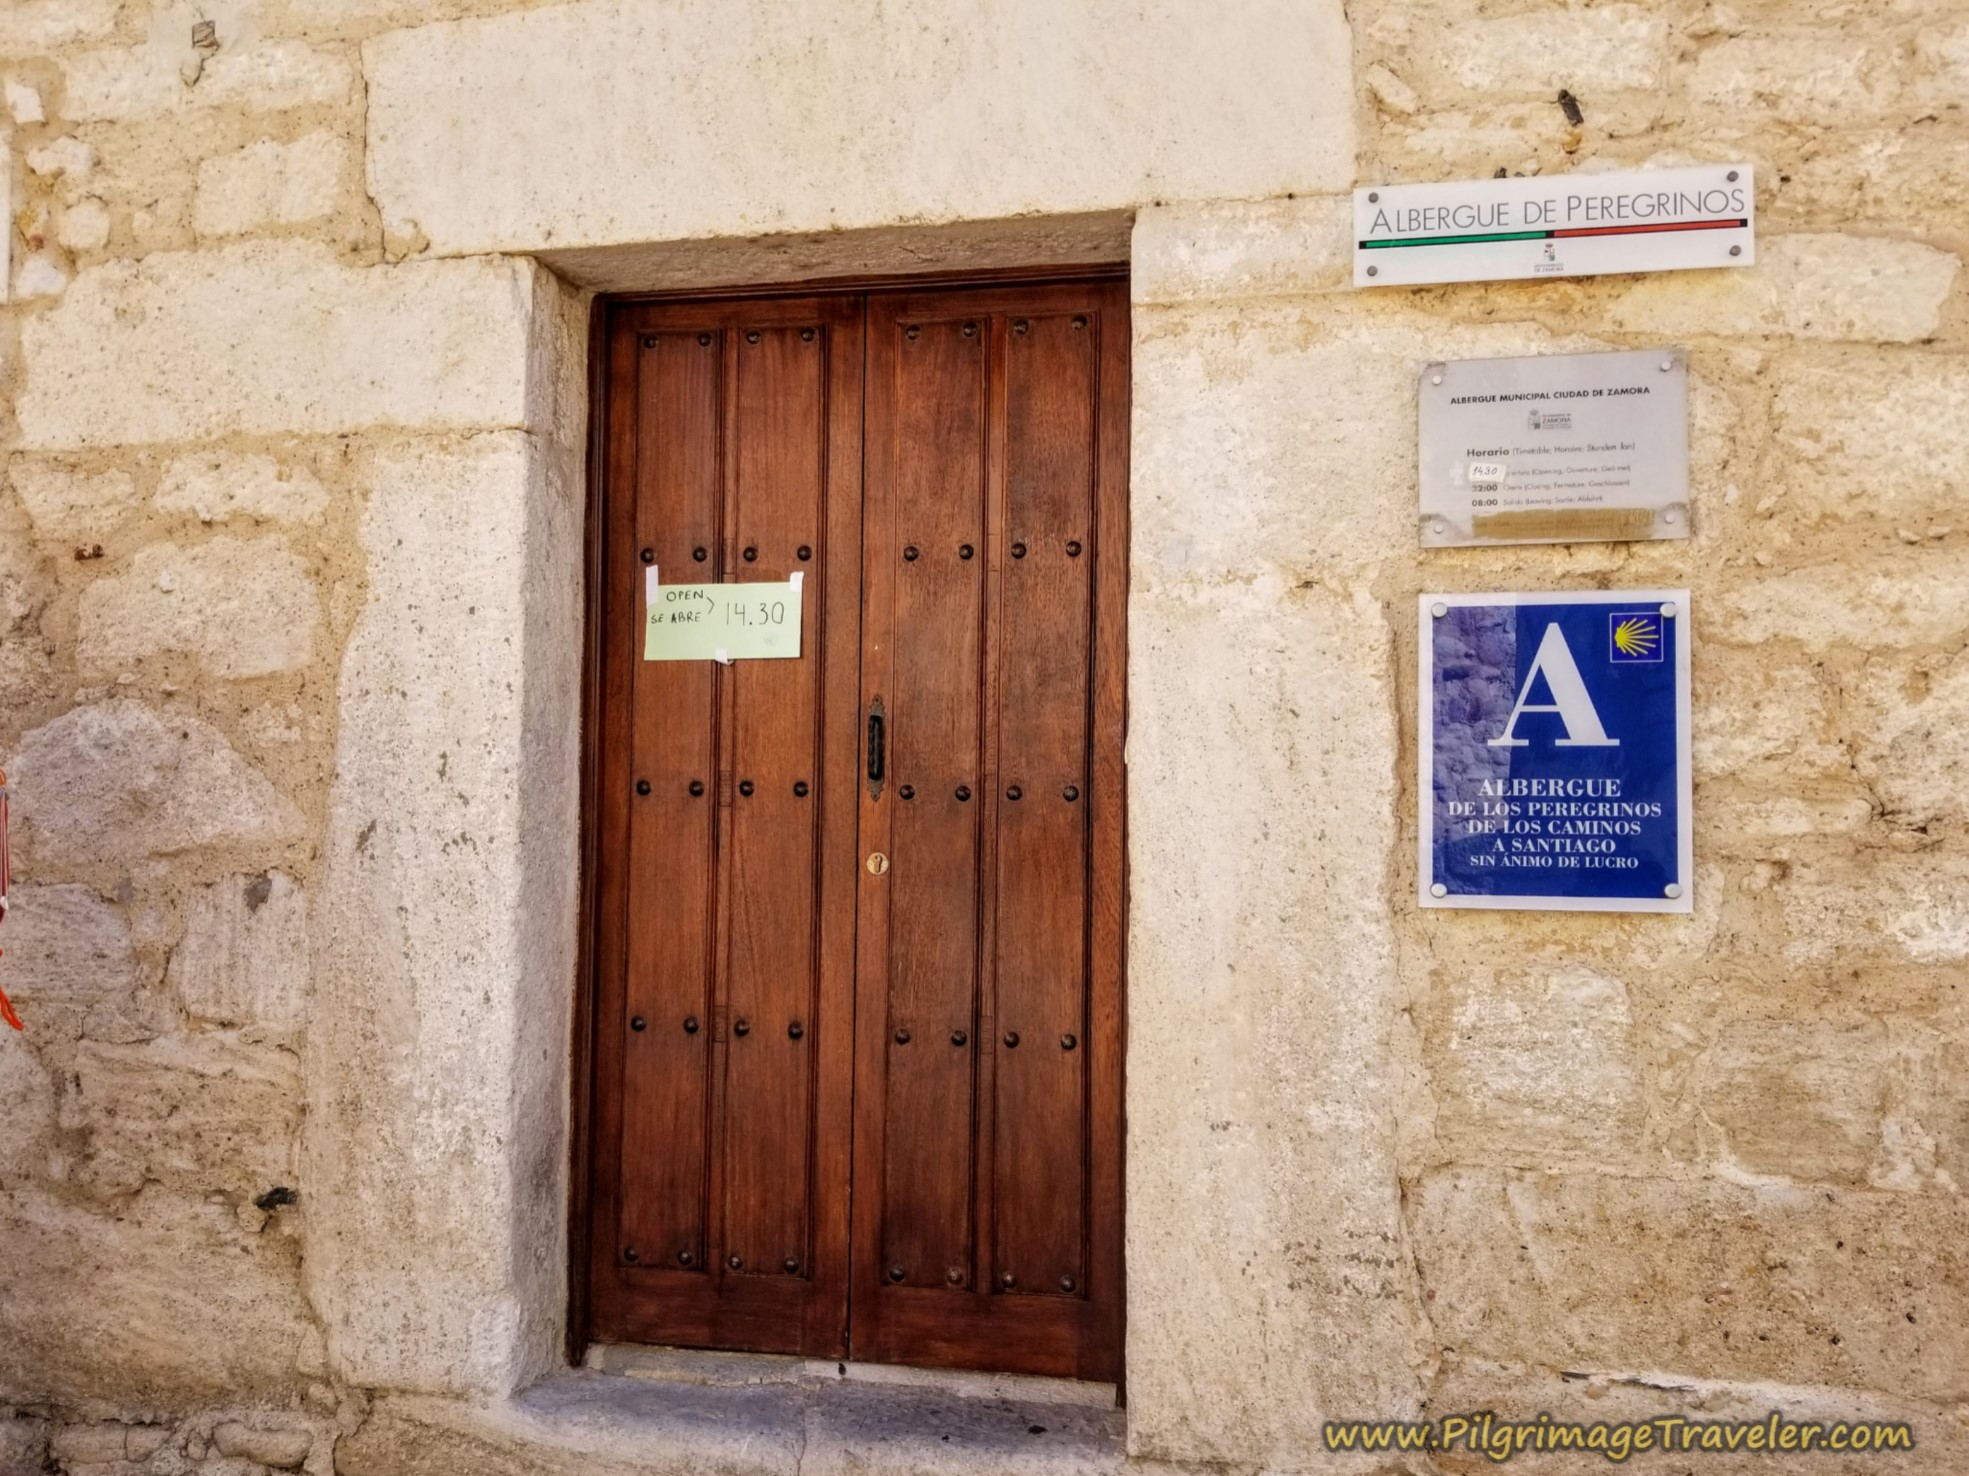 Entrance to the Albergue de Peregrinos de Zamora